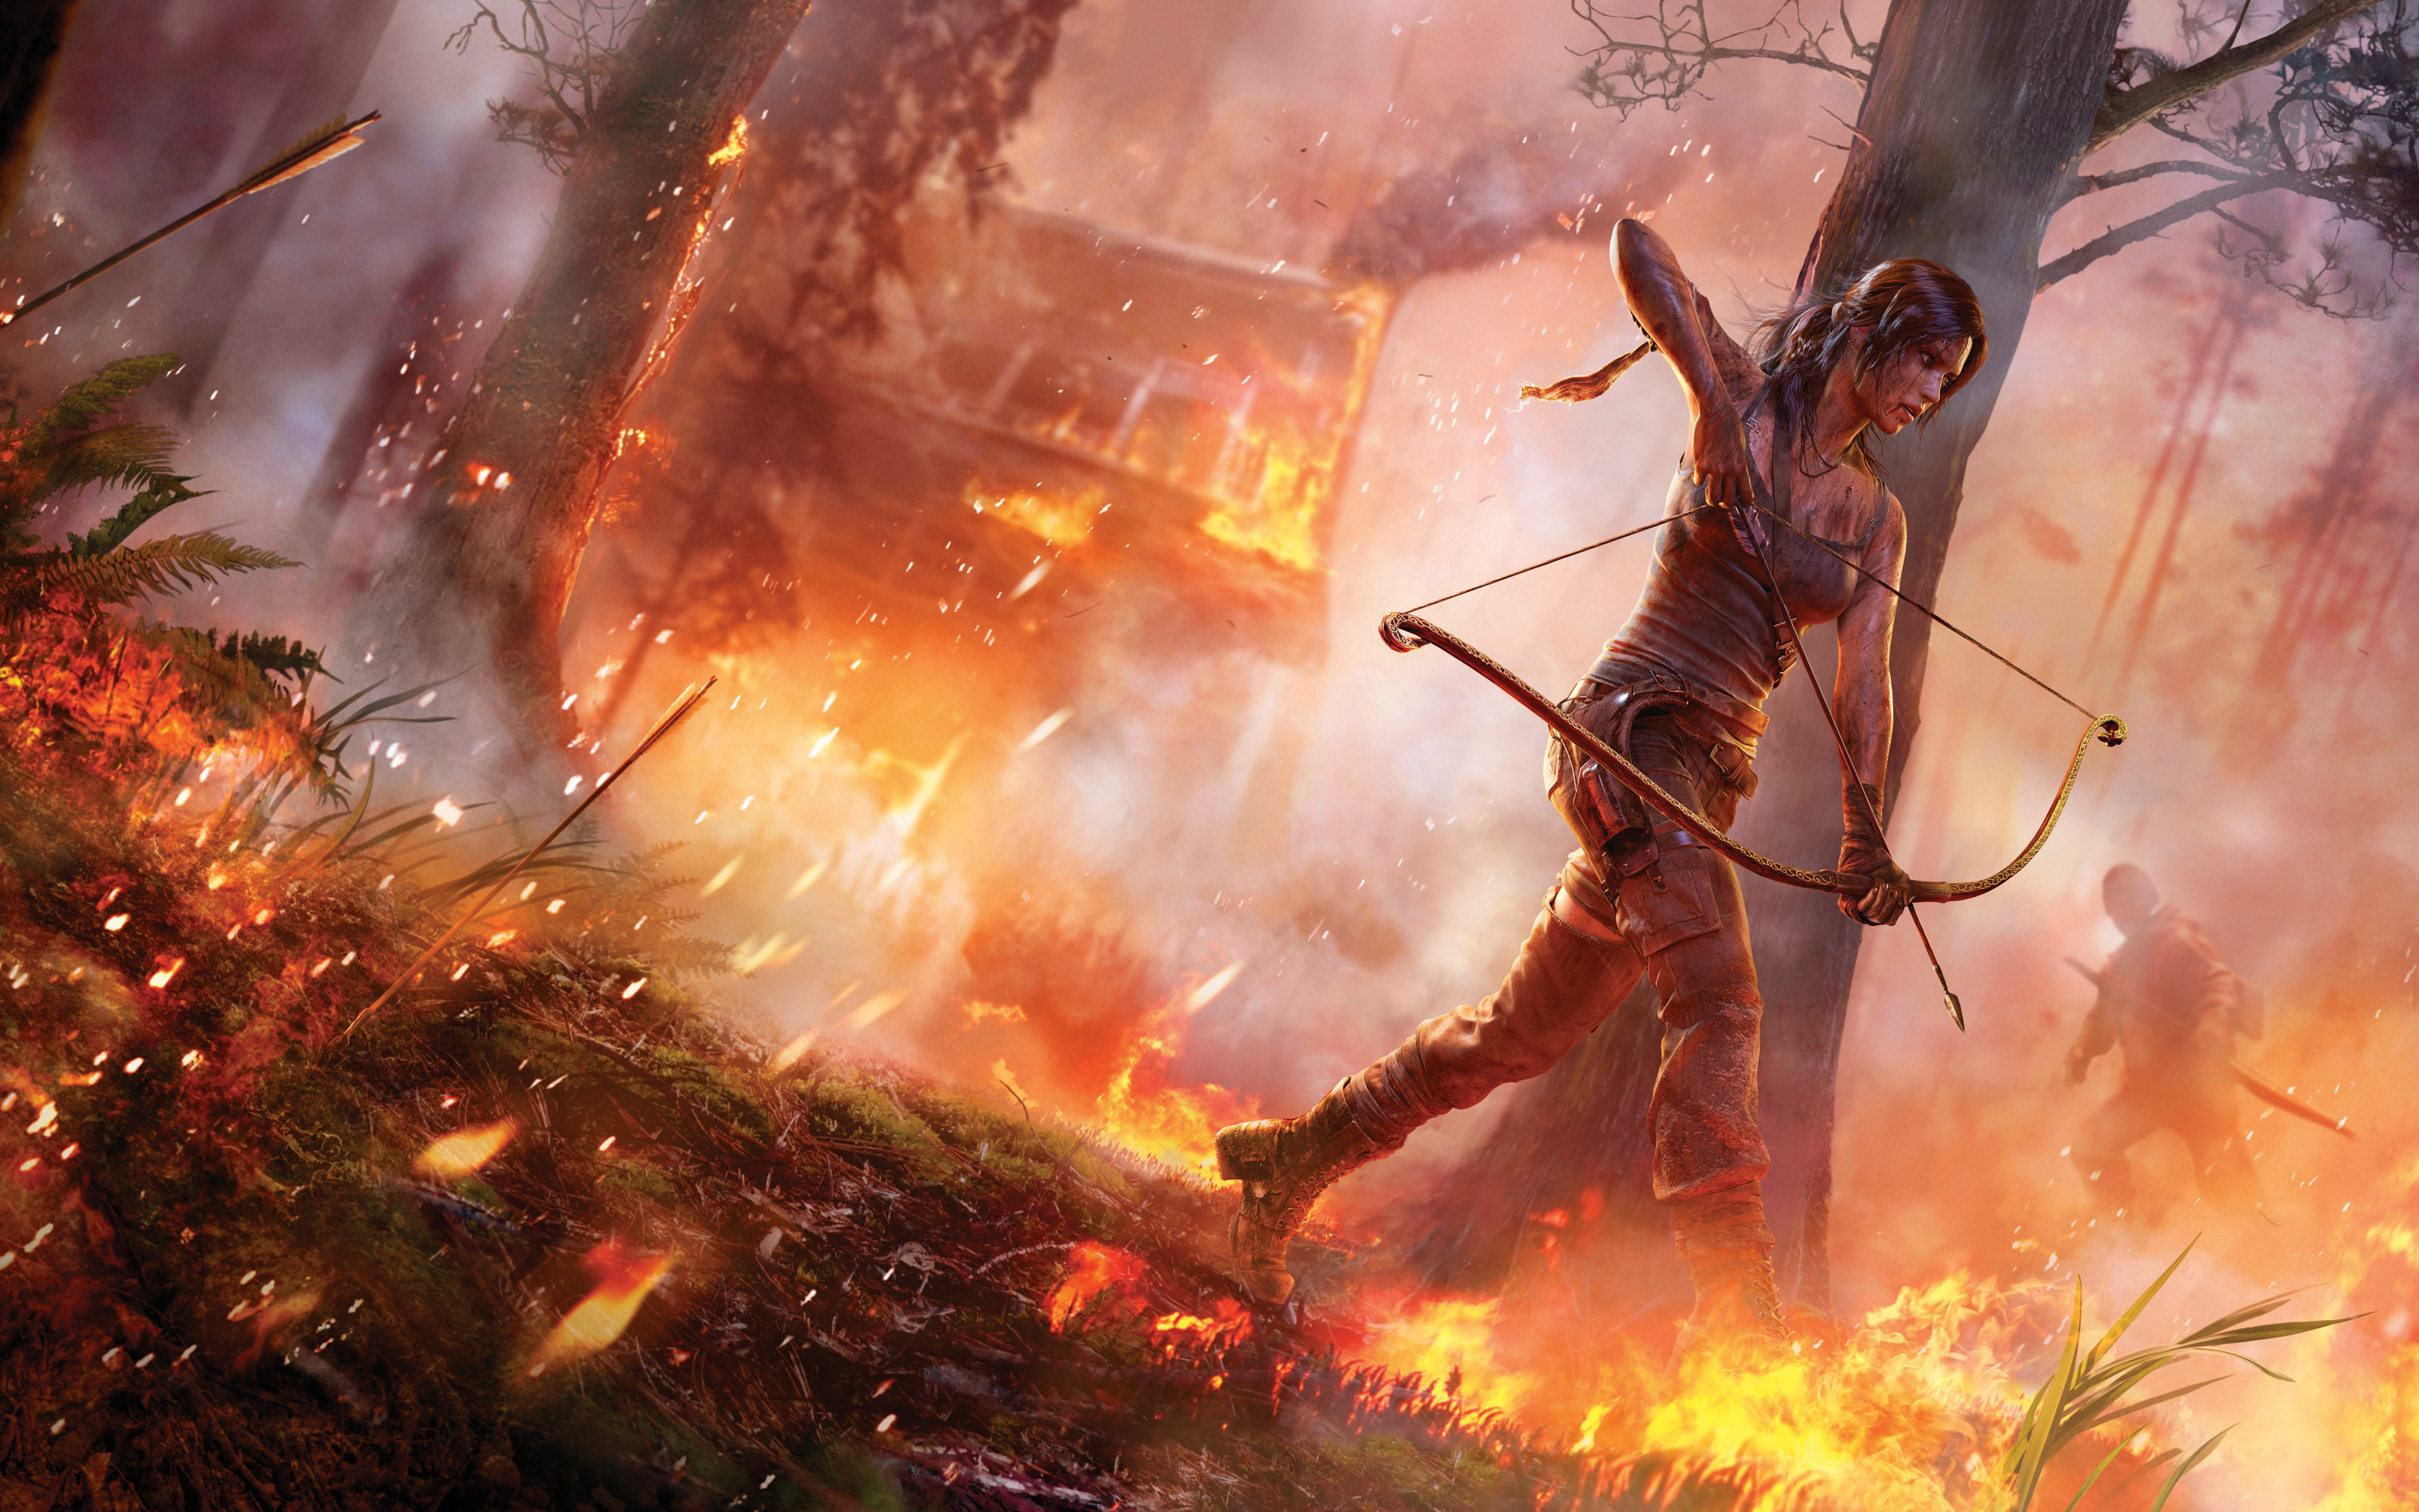 Does Lara Kill Too Many Bad Guys In The New Tomb Raider?